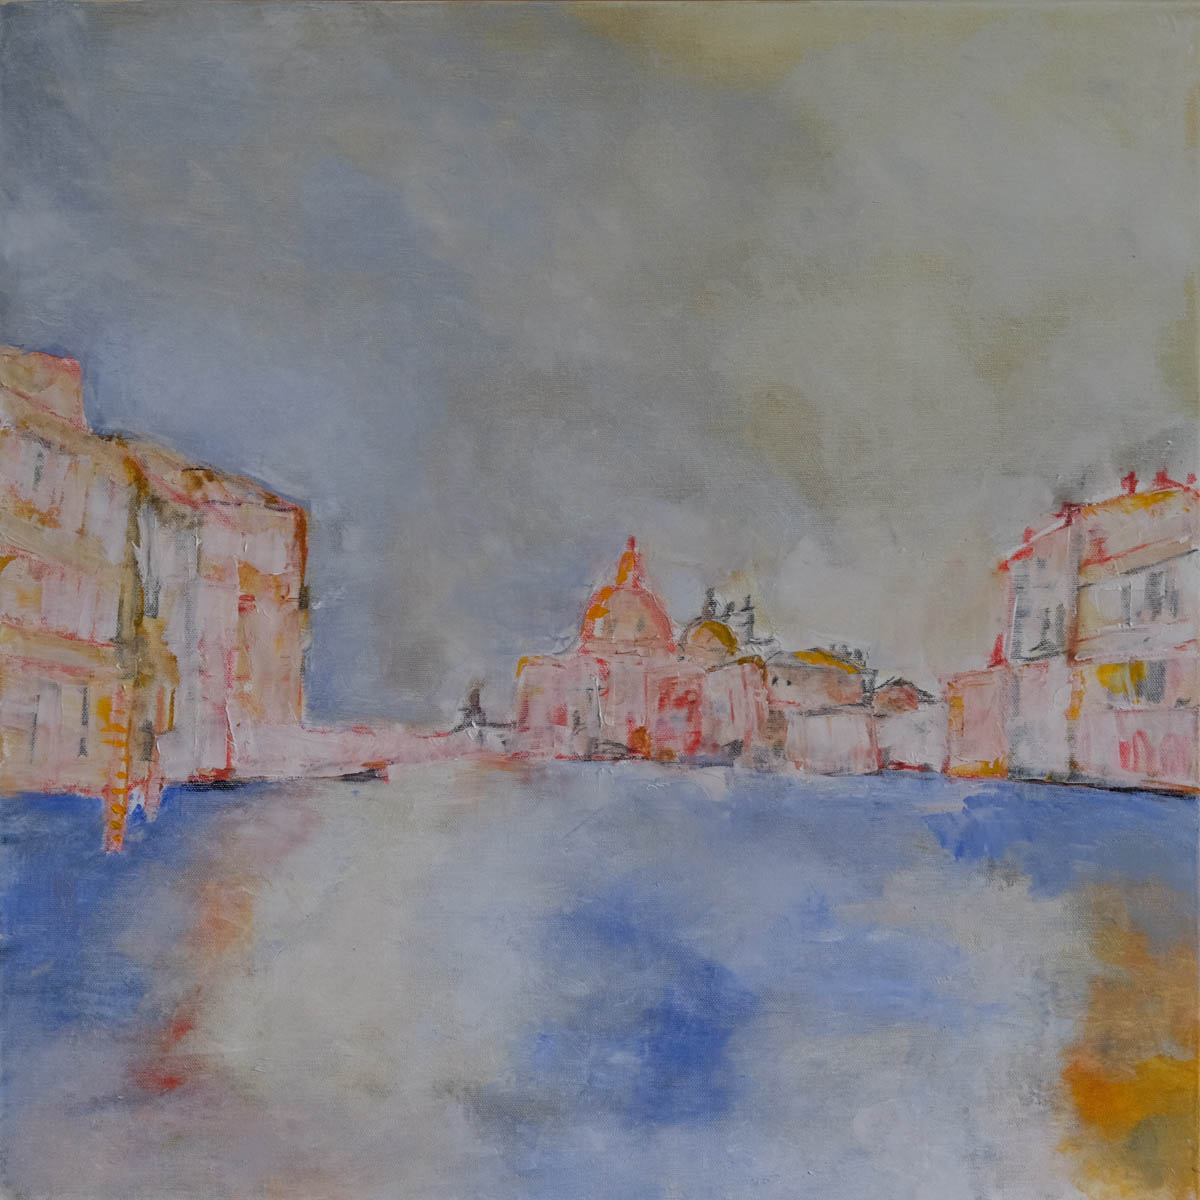 View of the Grand Canal from Academia. Oil painting on canvas.